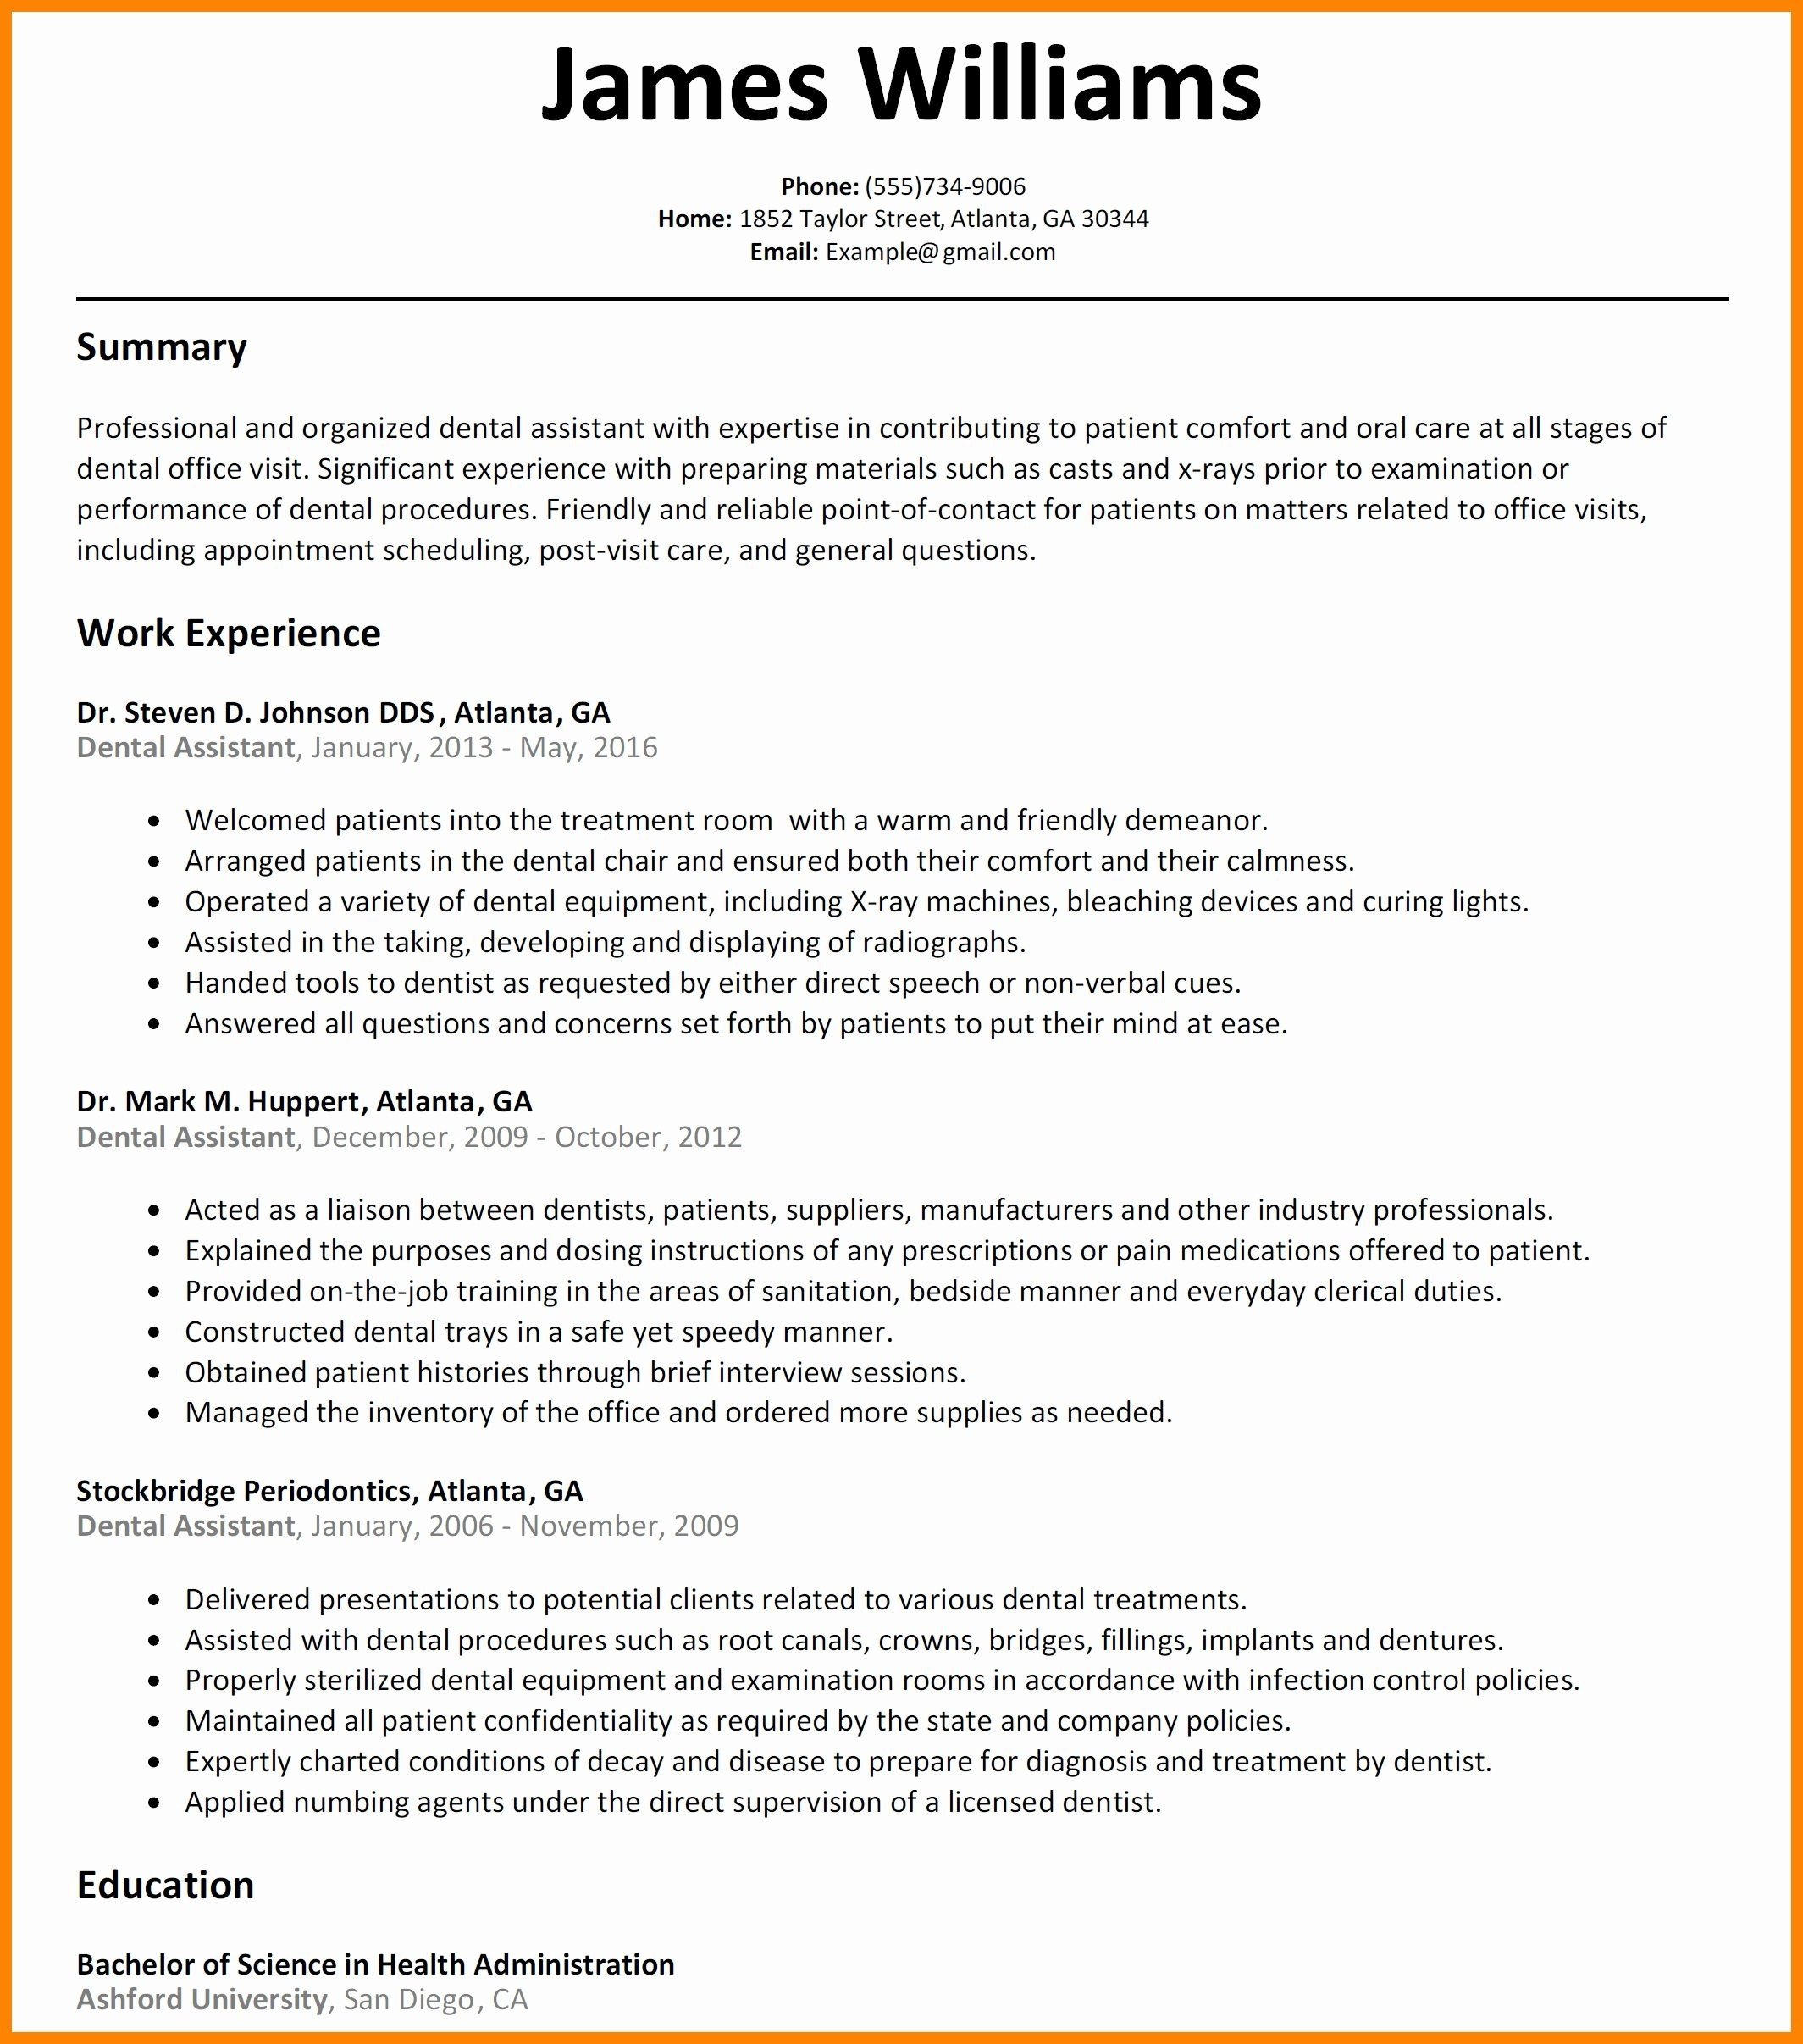 Resume for Dental Office Manager - Dental assistant Resume Templates Lovely Resume Dental assistant for